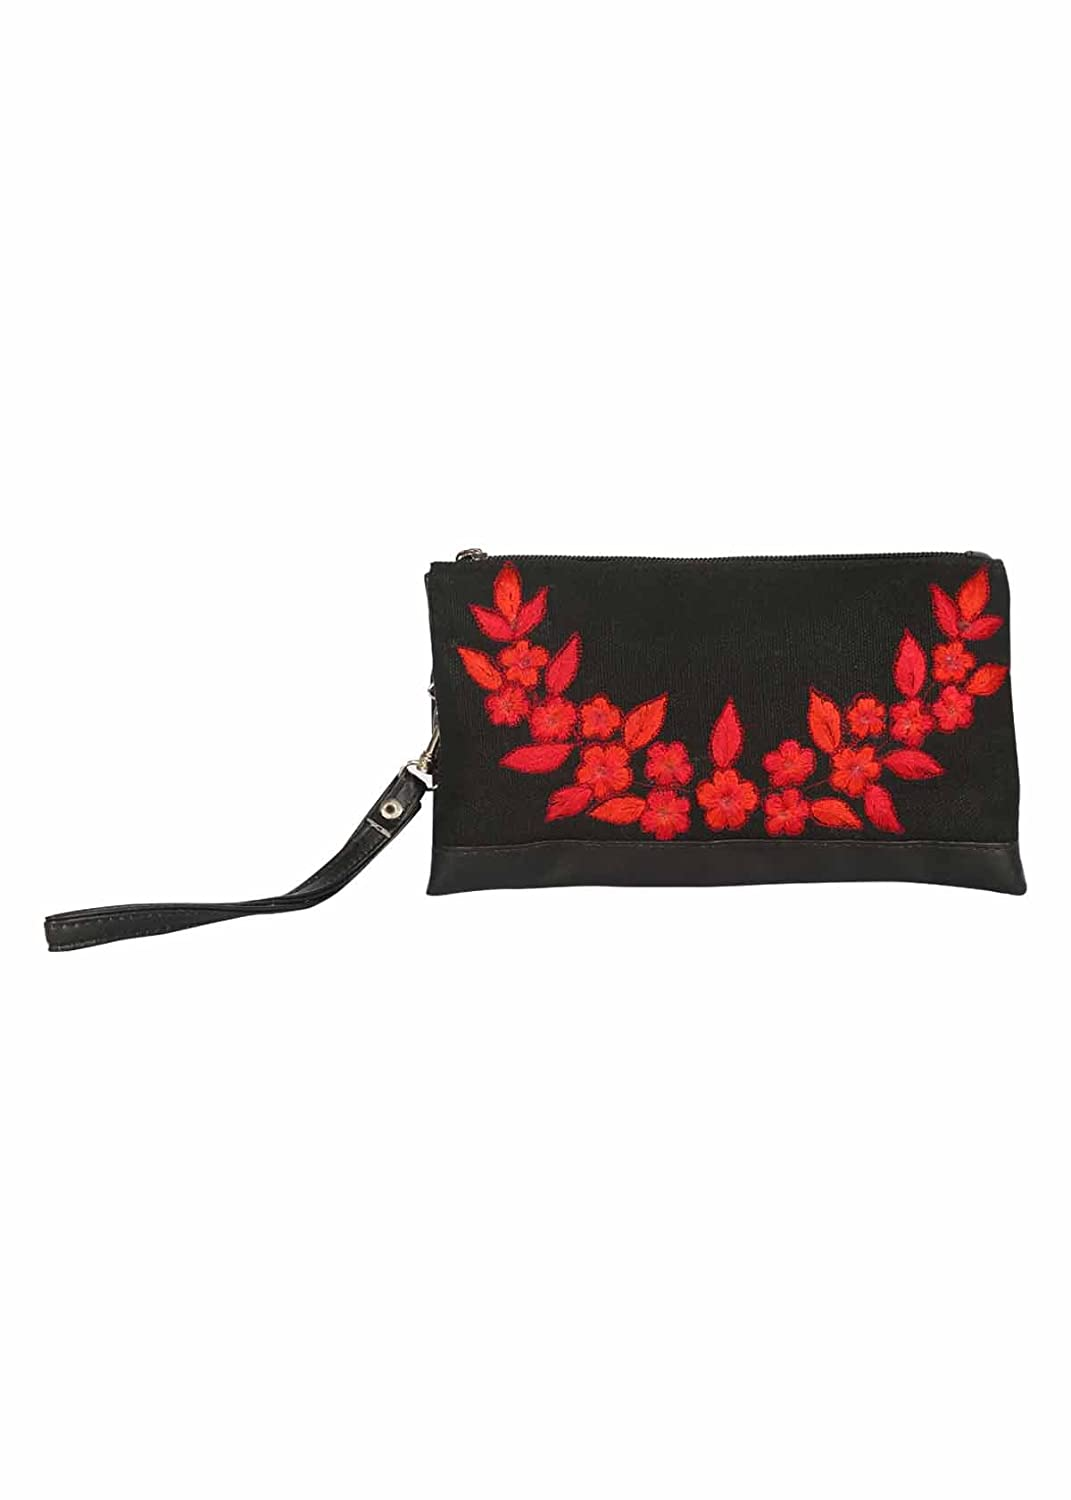 Pick Pocket black canvas wristlet with red embroidery